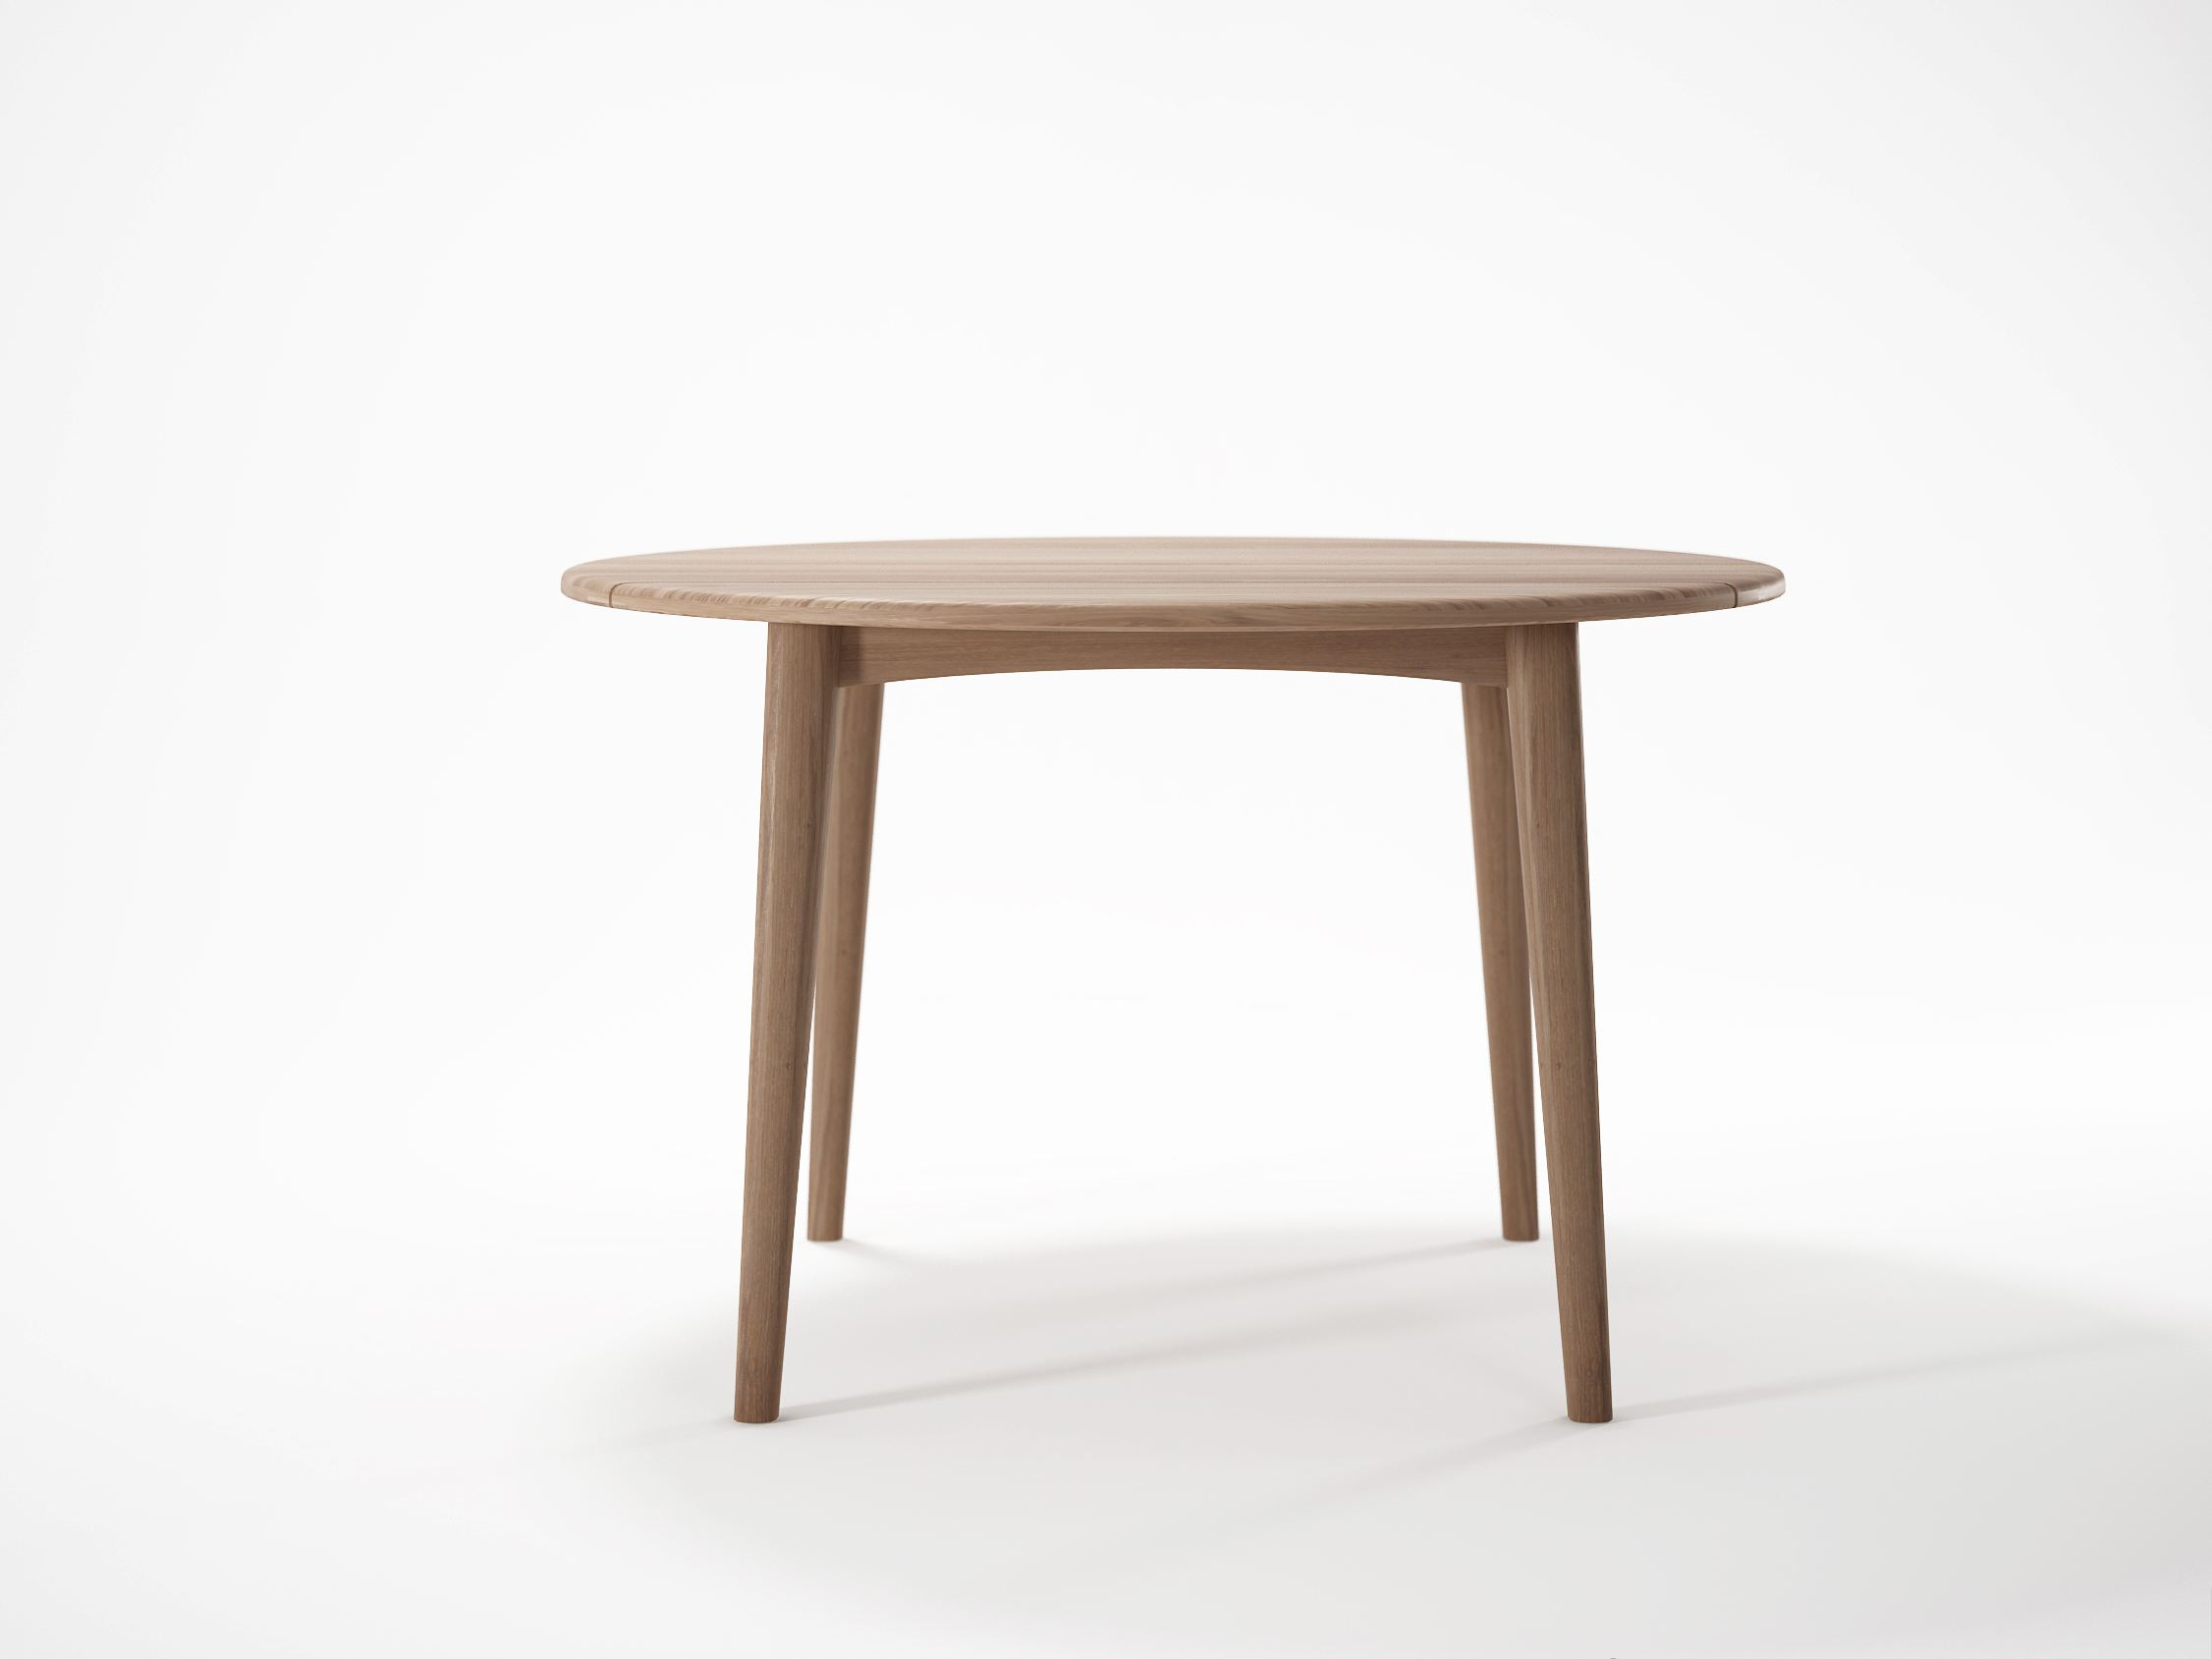 GRASSHOPPER Tavolo rotondo by KARPENTER design Hugues Revuelta